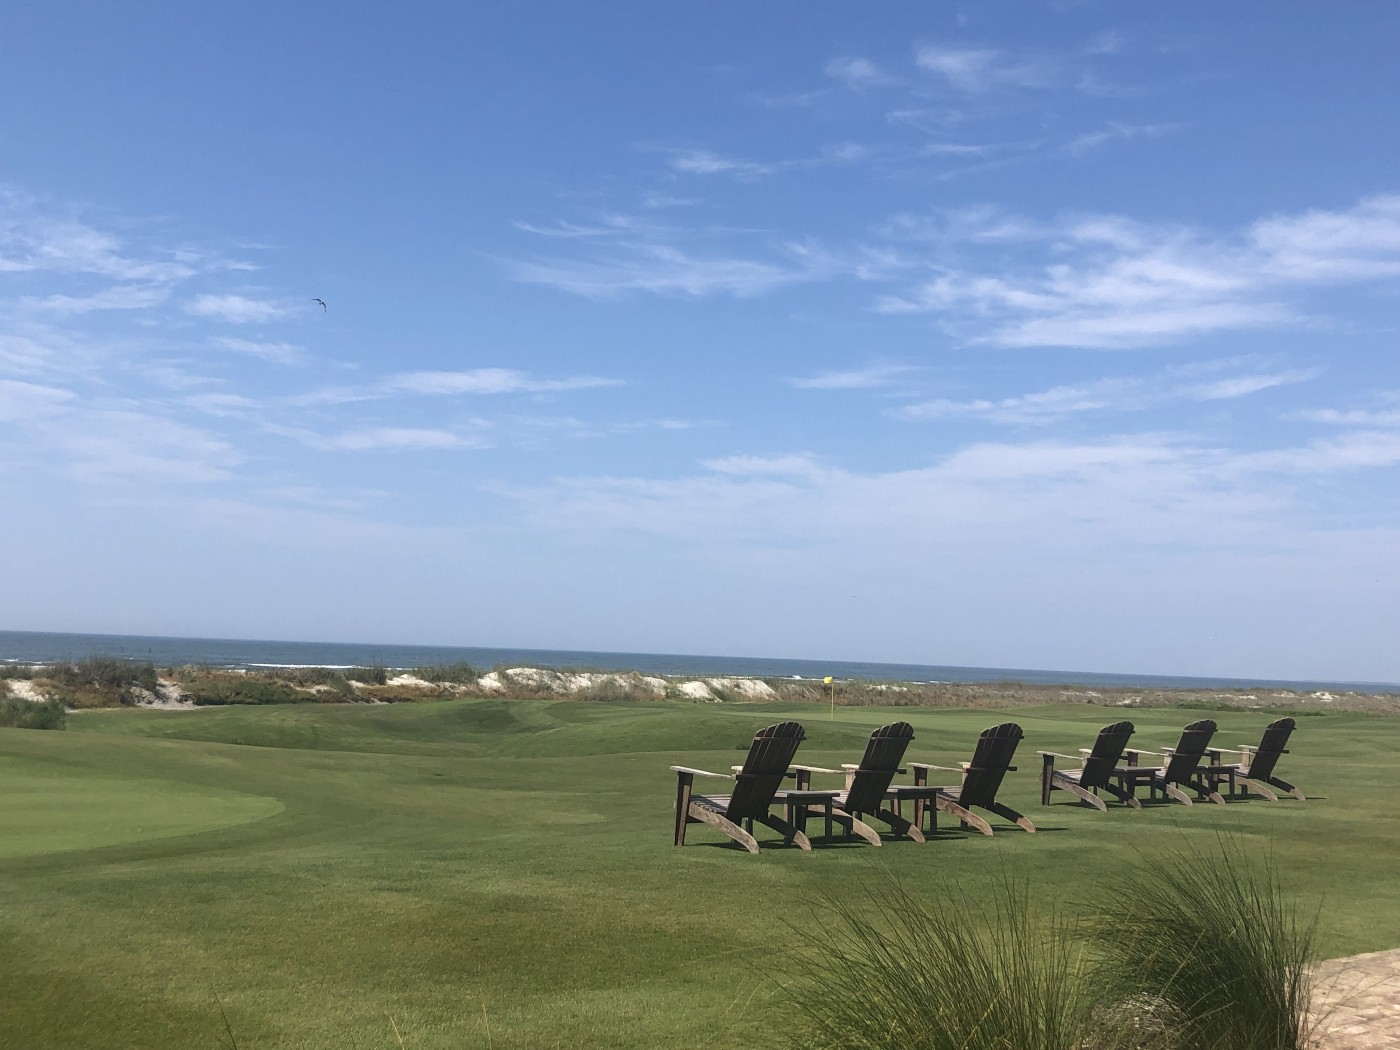 A row of six chairs on a vast green lawn looking out at the ocean under a wide blue sky